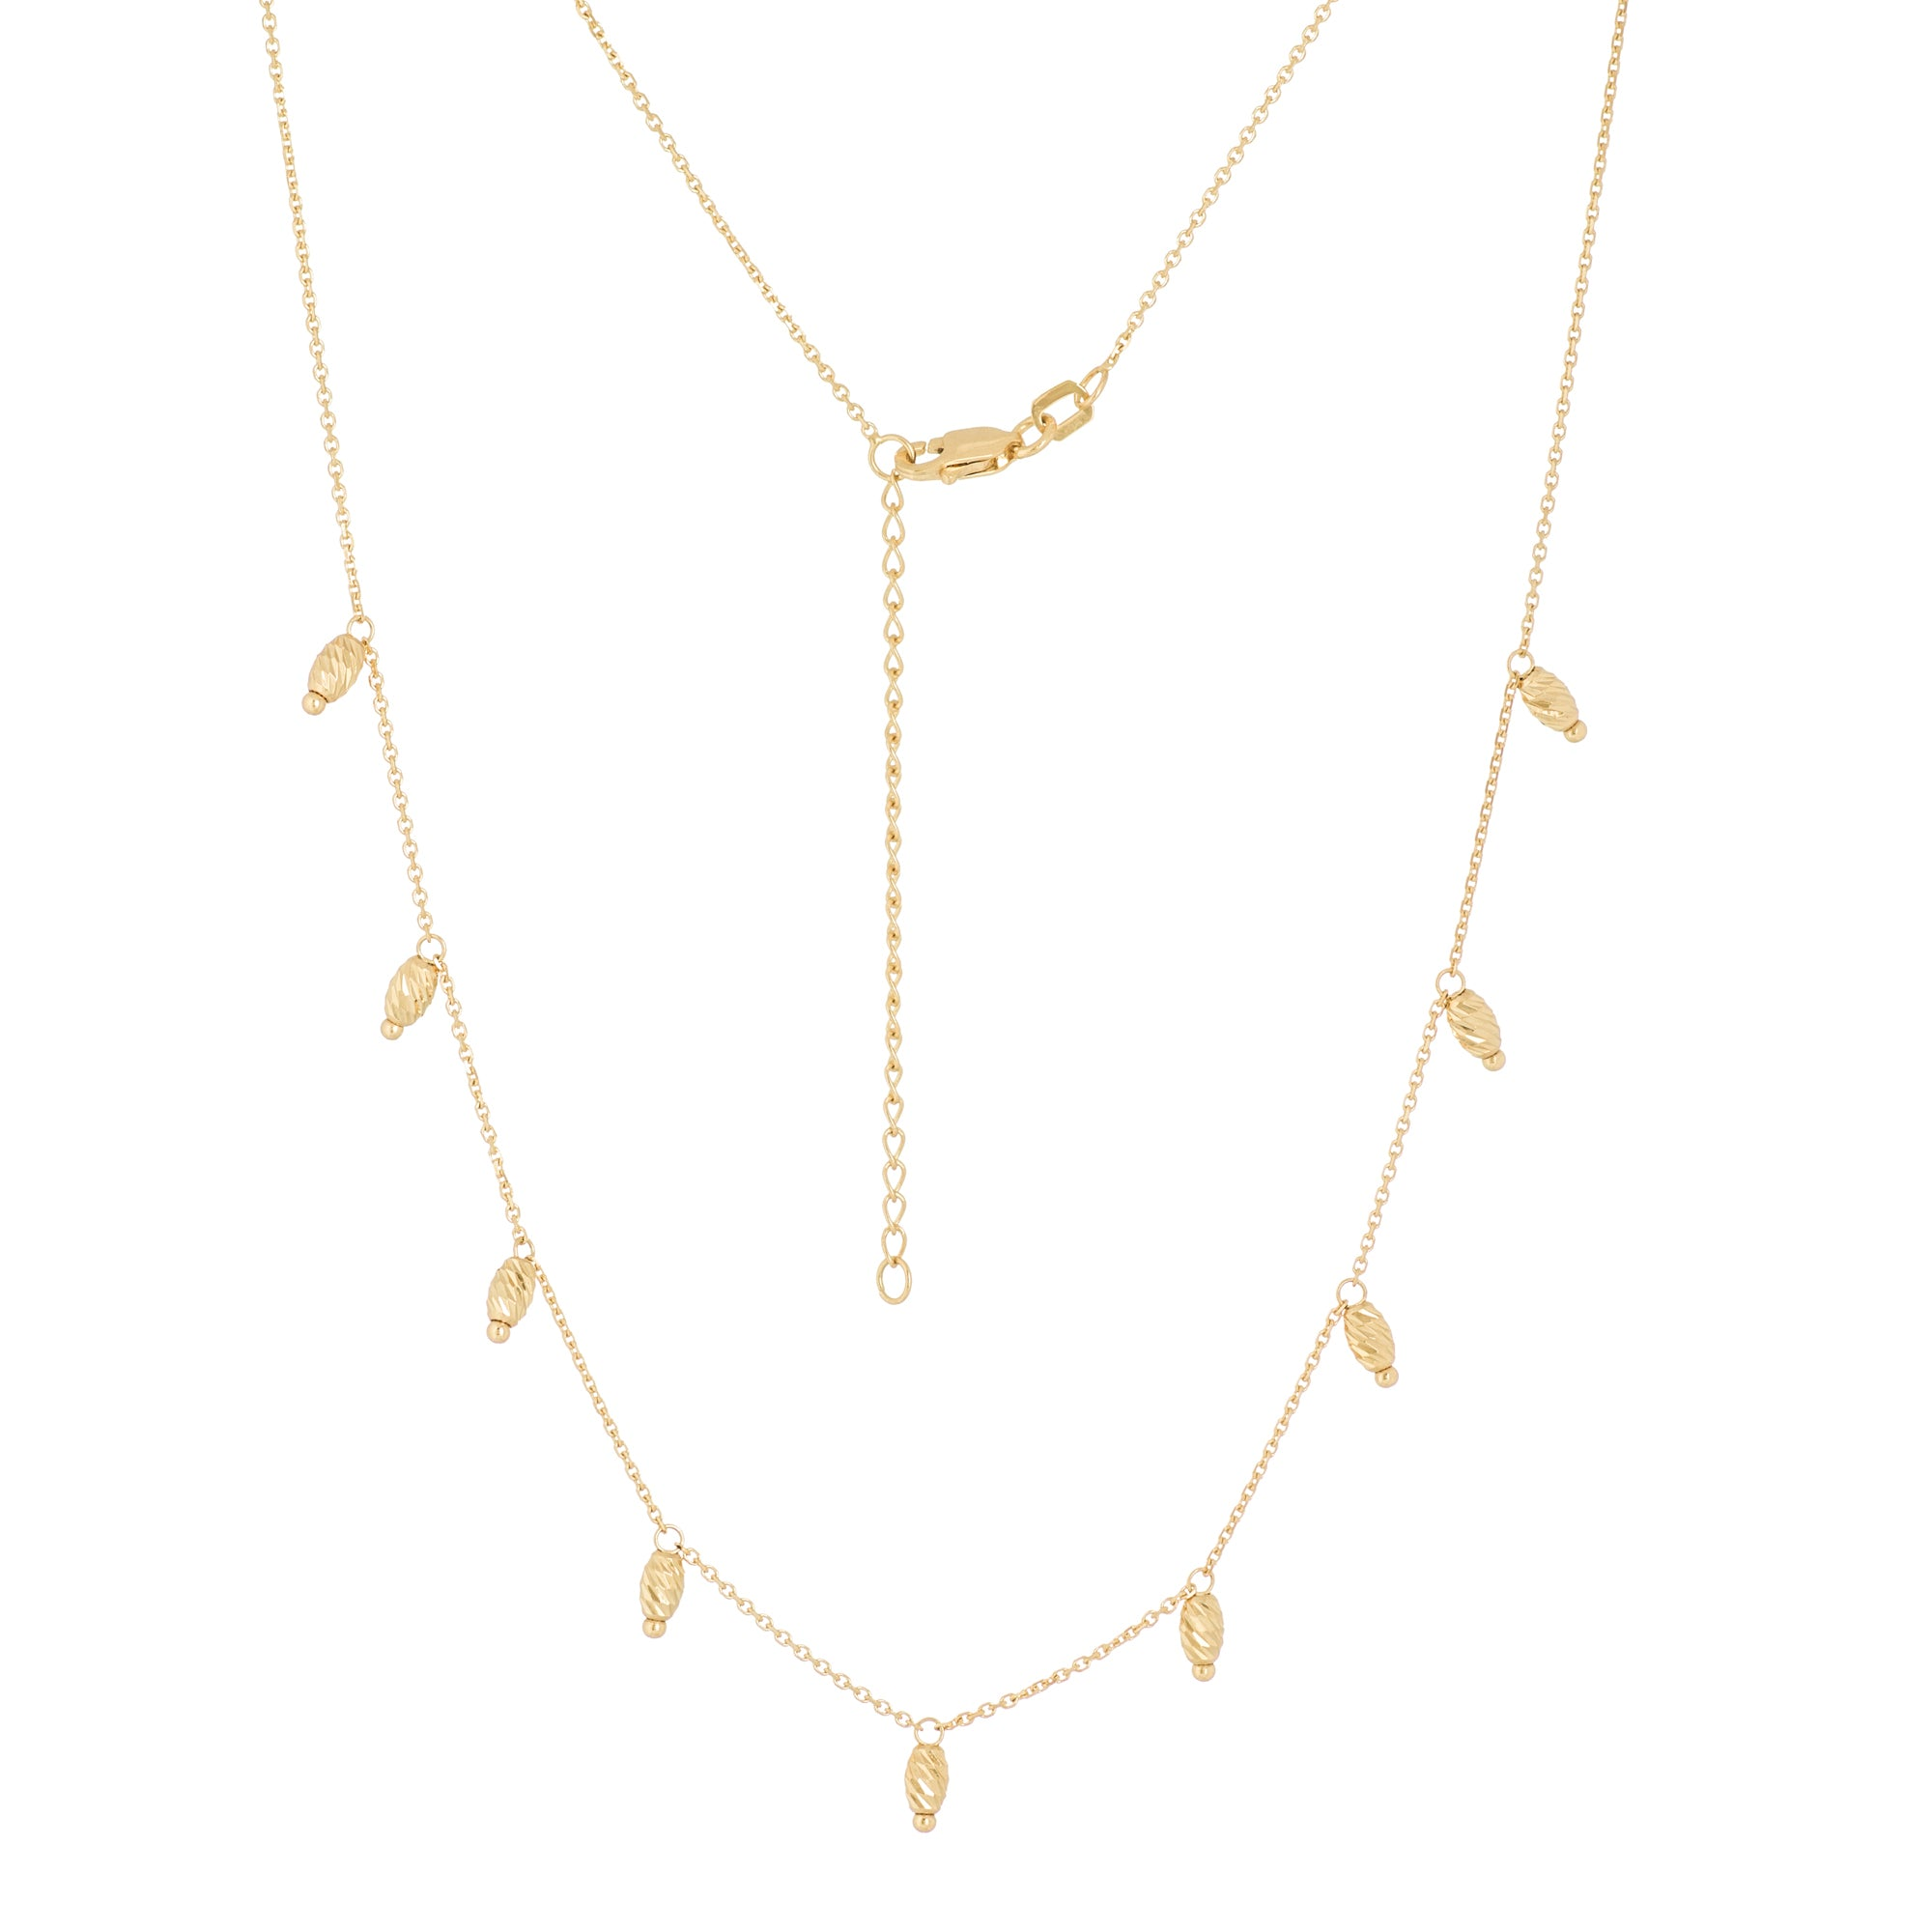 14K Yellow Gold Bead Stations 9pcs Adjustable Necklace with Cable Chain